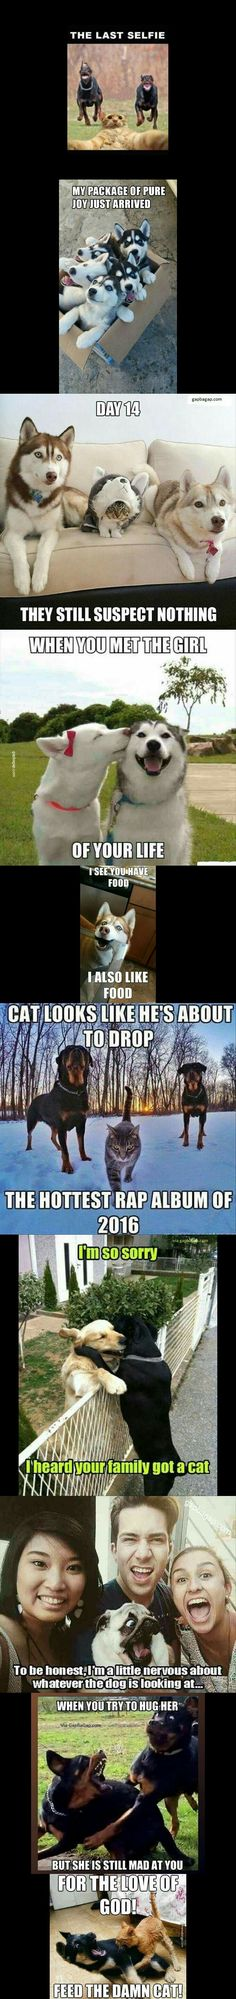 Top 10 Funniest Memes ft. Funny Dogs And Cats - Tap the pin for the most adorable pawtastic fur baby apparel! You'll love the dog clothes and cat clothes! <3